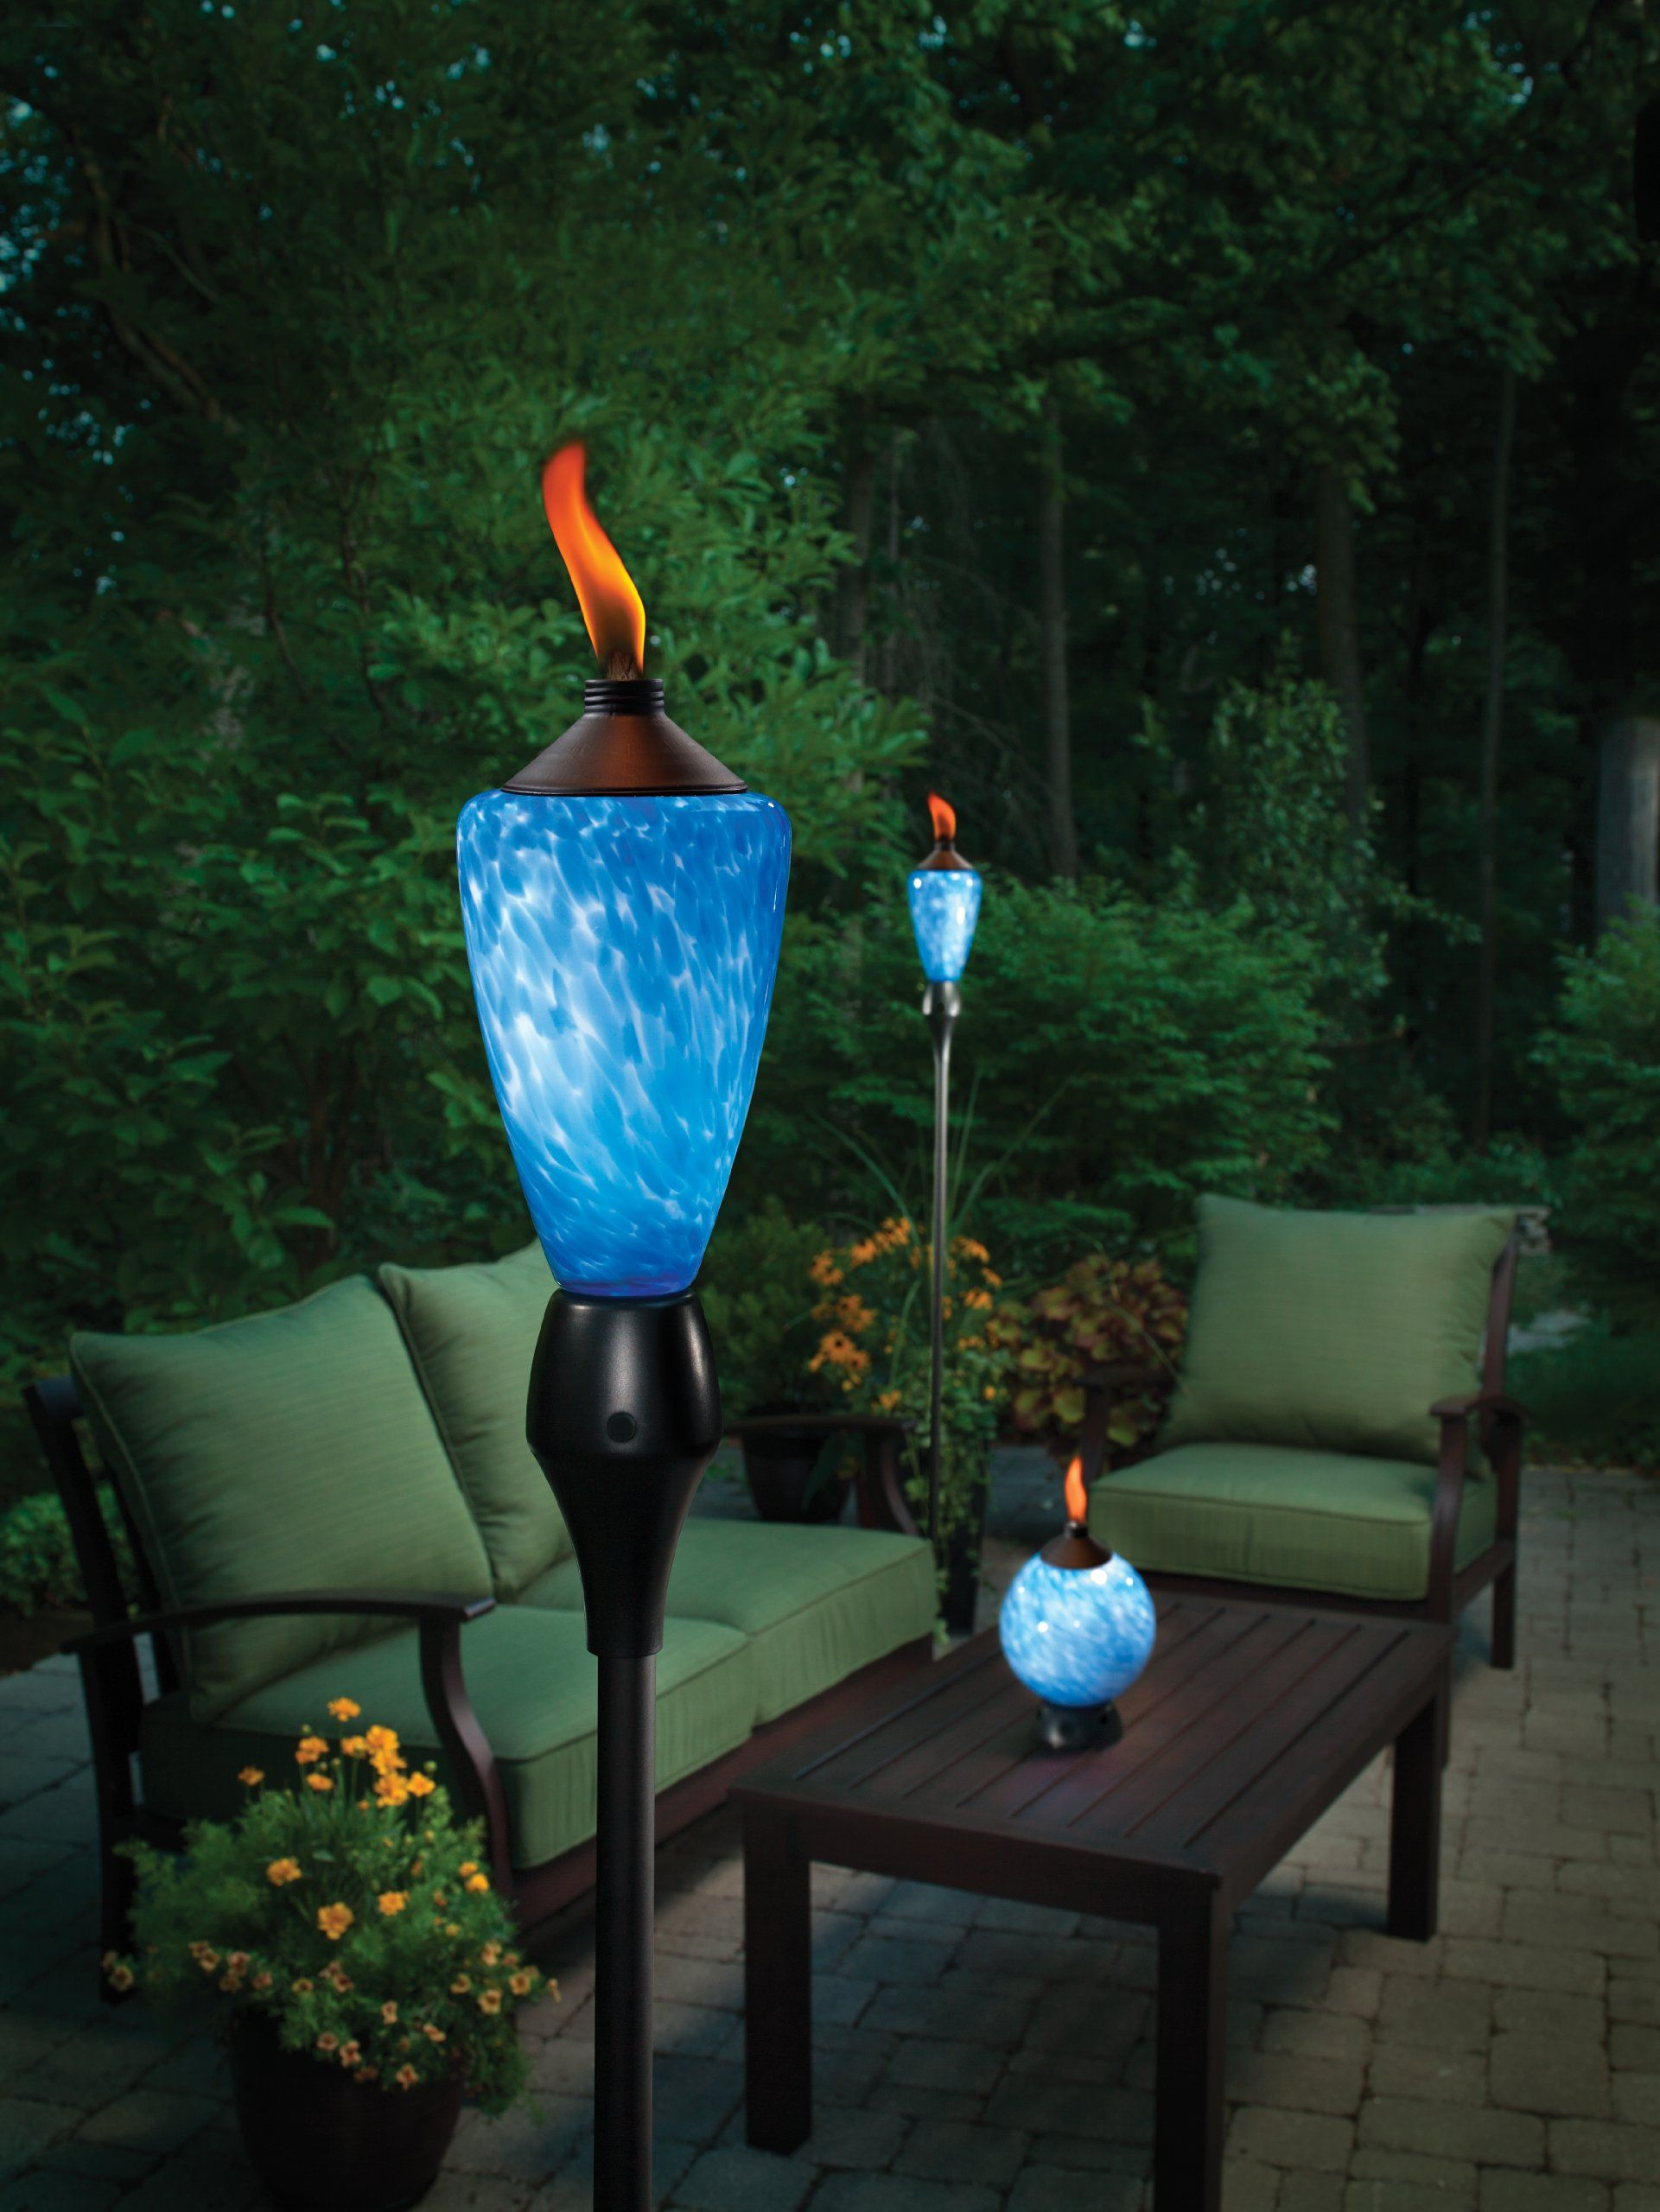 This TIKI Glow Torch adds atmosphere and light effects. Not a fire pit but  I really like it